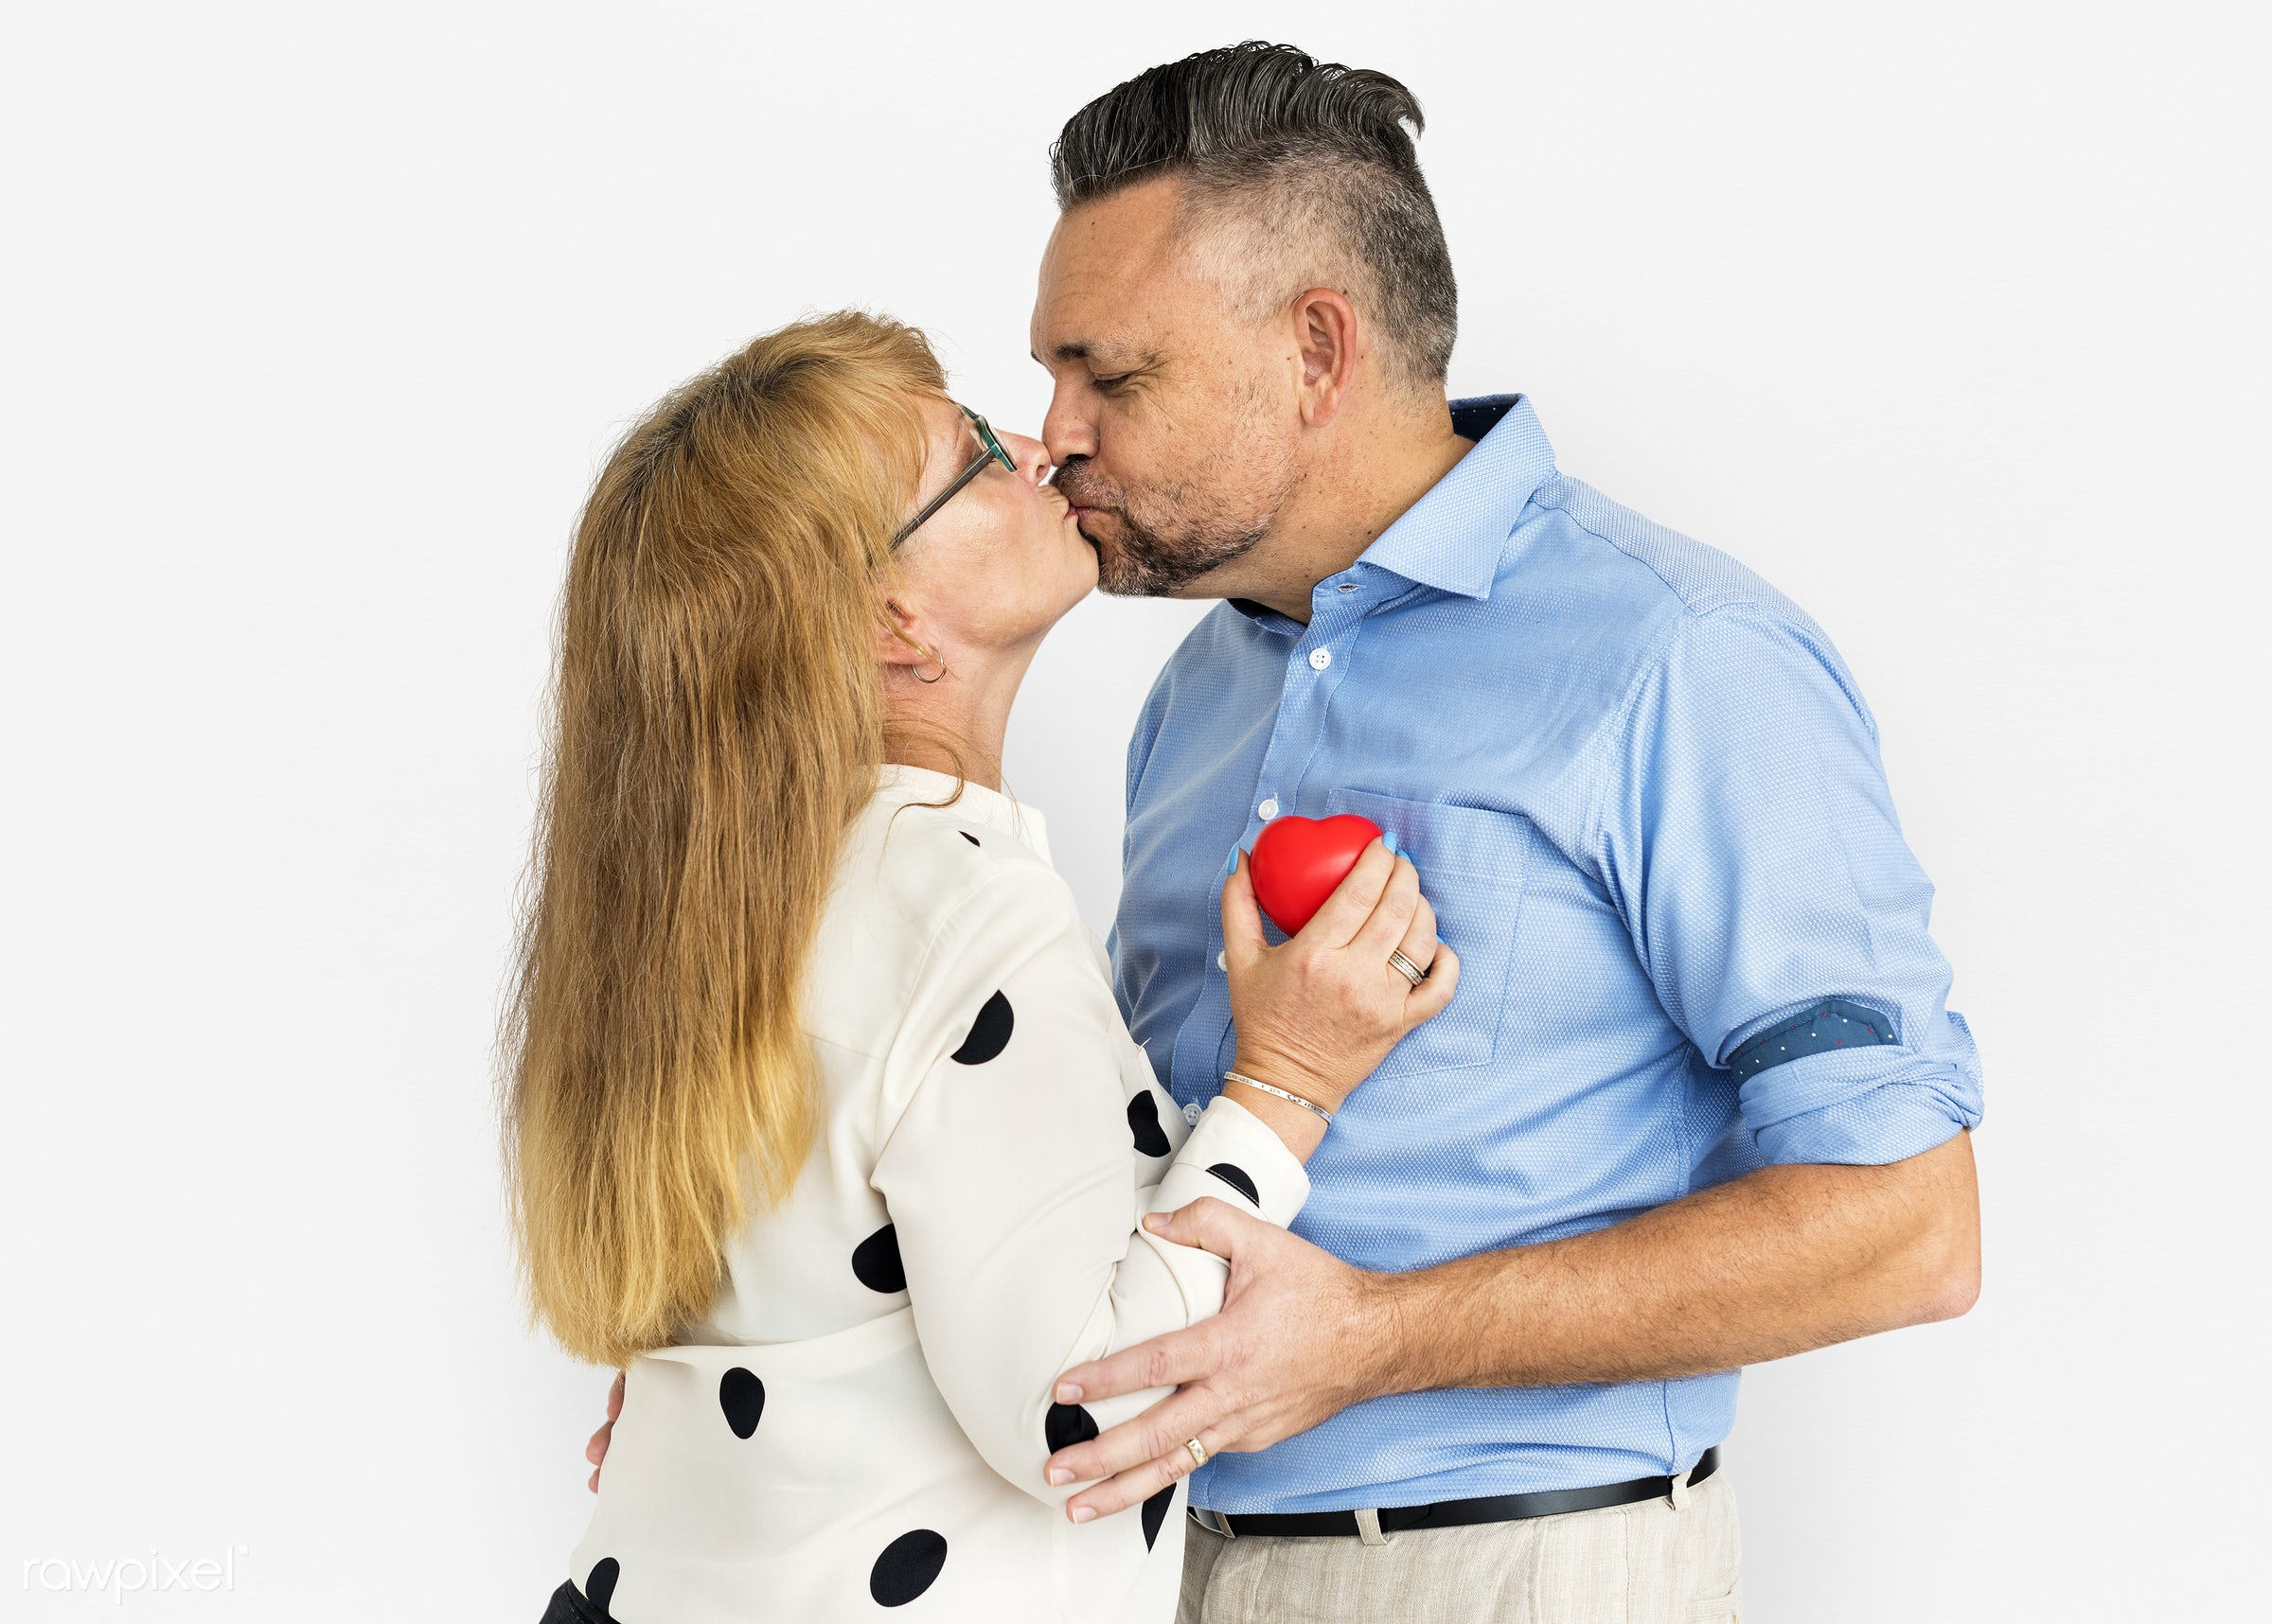 studio, person, people, together, caucasian, love, family, woman, care, cheerful, smiling, affection, heart, kissing, white...